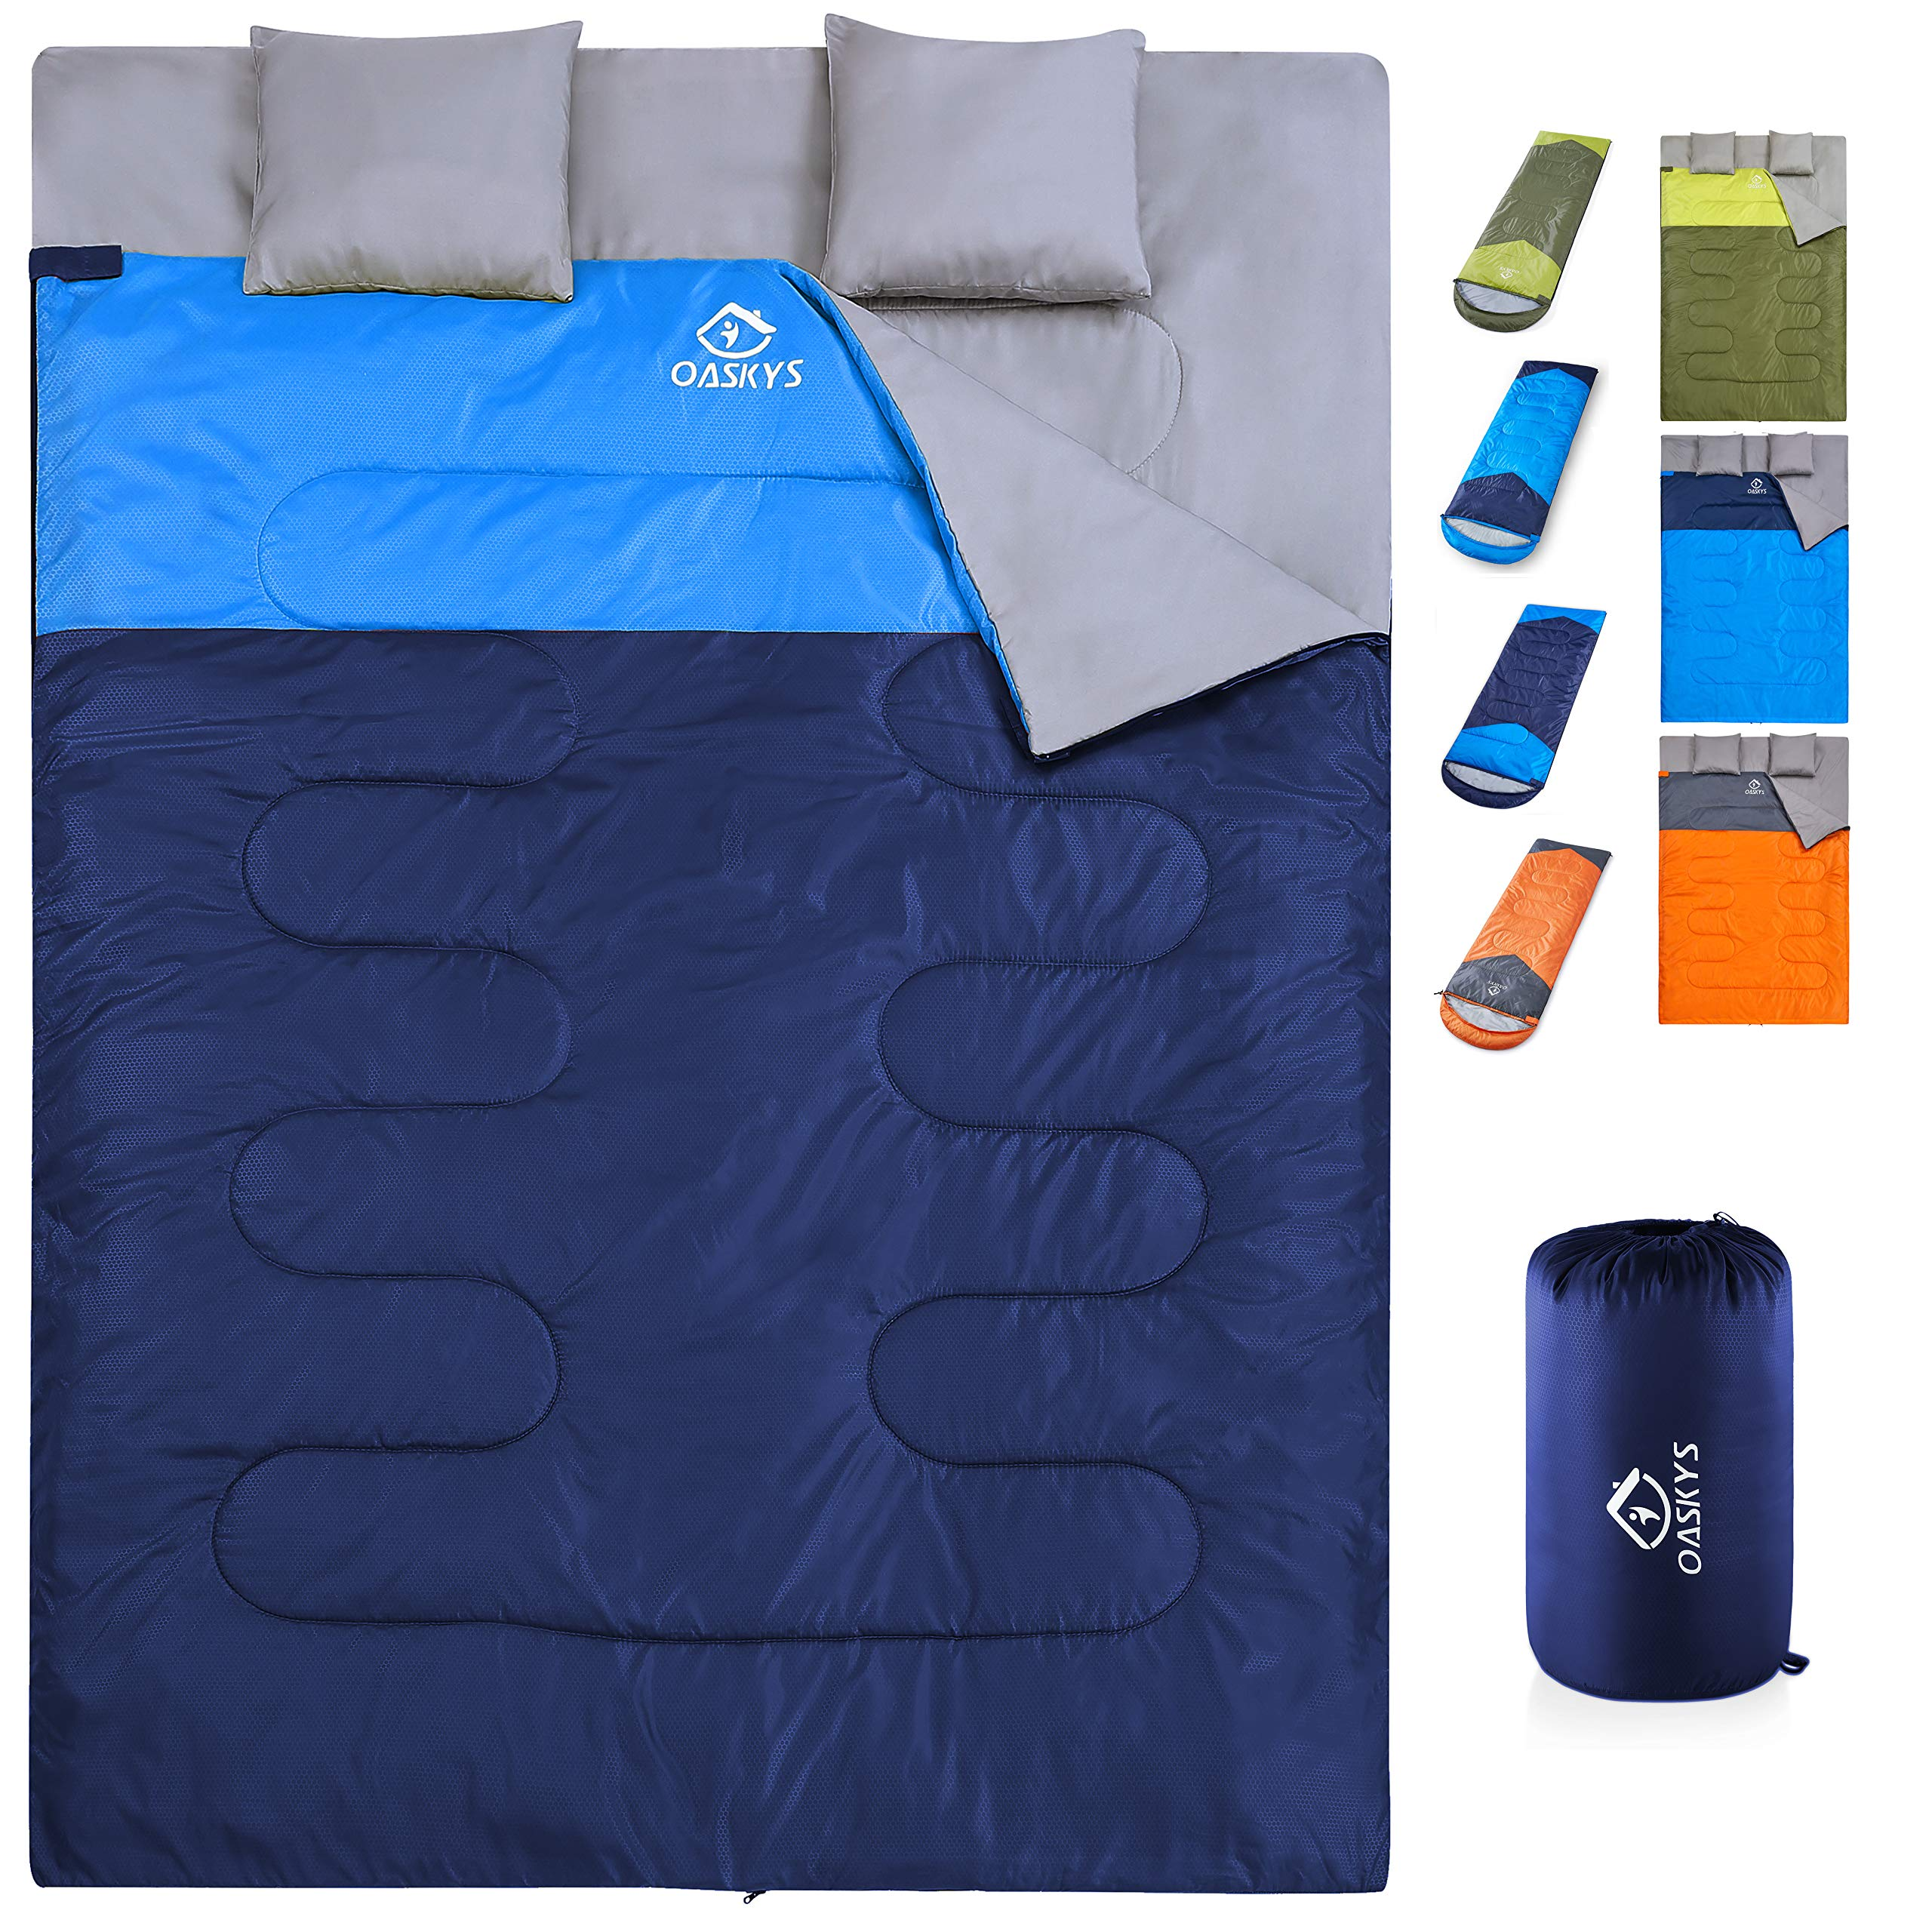 oaskys Camping Sleeping Bag - 3 Season Warm & Cool Weather - Summer, Spring, Fall, Lightweight, Waterproof for Adults & Kids - Camping Gear Equipment, Traveling, and Outdoors (Double Navy Blue) by oaskys